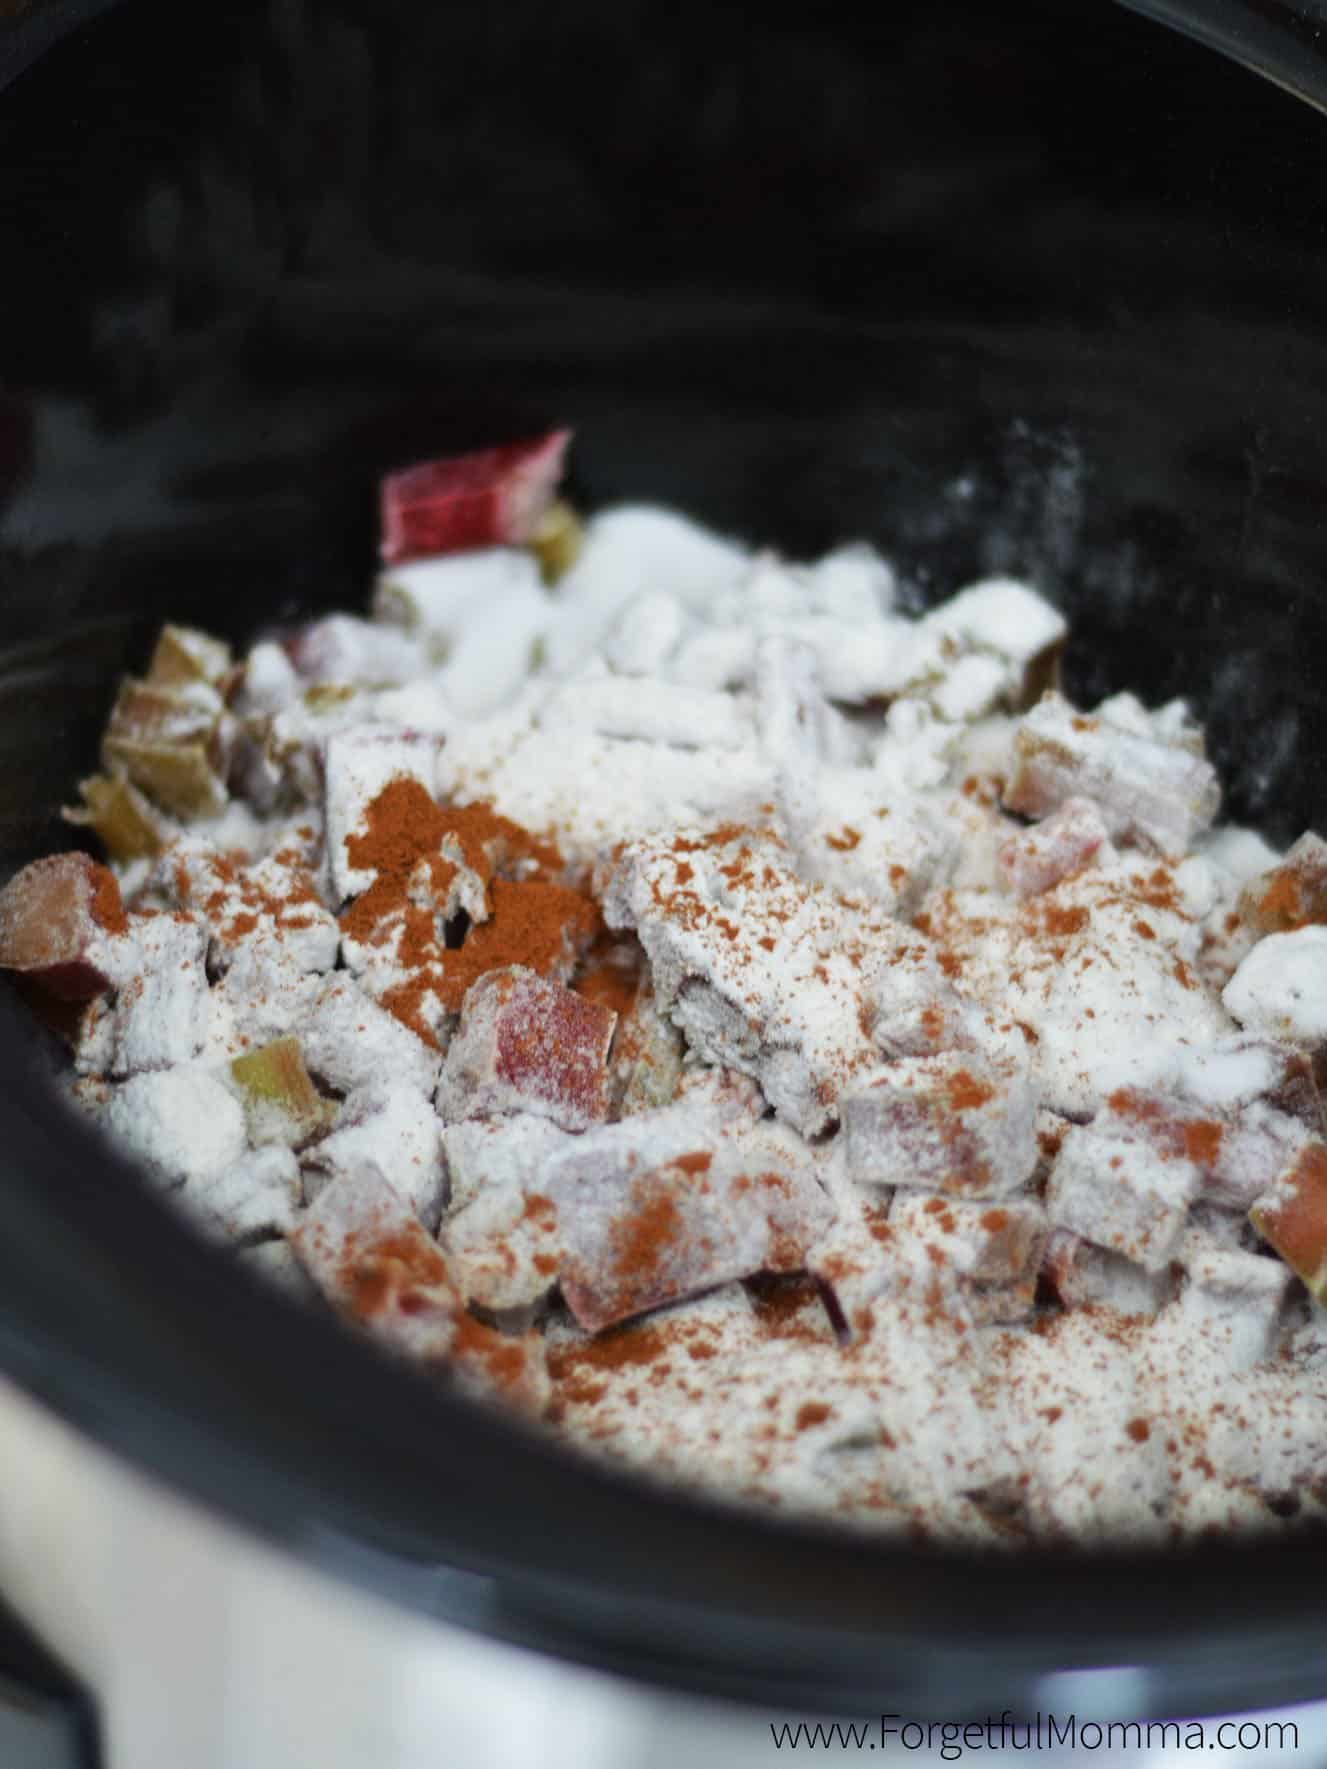 Rhubarb Crisp in the Slow Cooker recipe